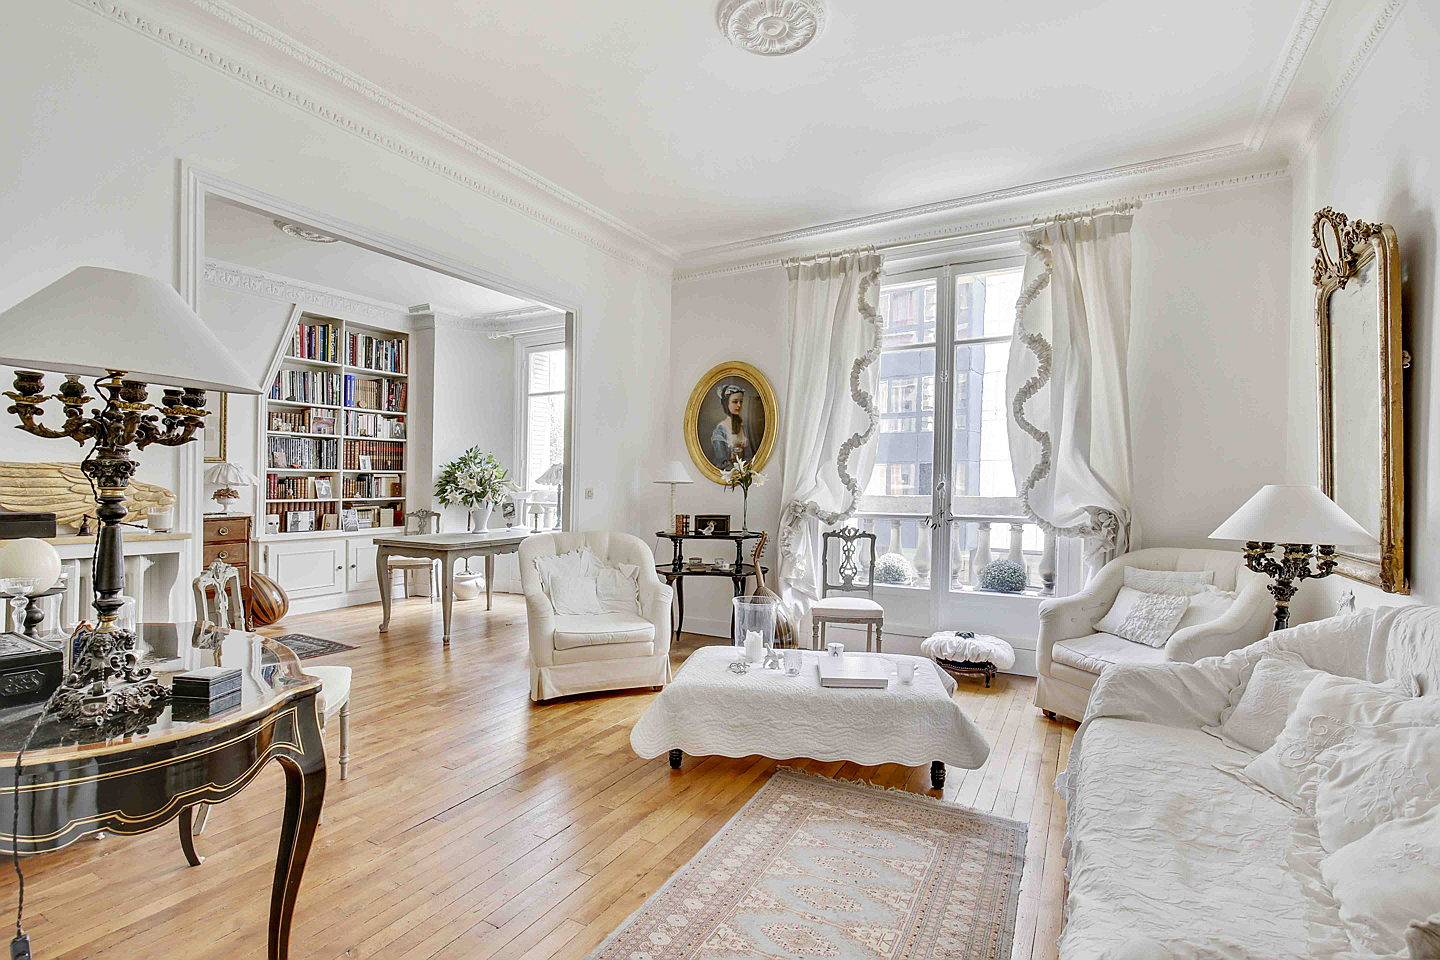 Hondarribia, Spain - This typically Parisian apartment is on sale for 1.3 million euros. The family property is located on the second floor of a building designed in the Haussmann style. The approx. 101 square metre interior consists of two bedrooms and a bathroom.